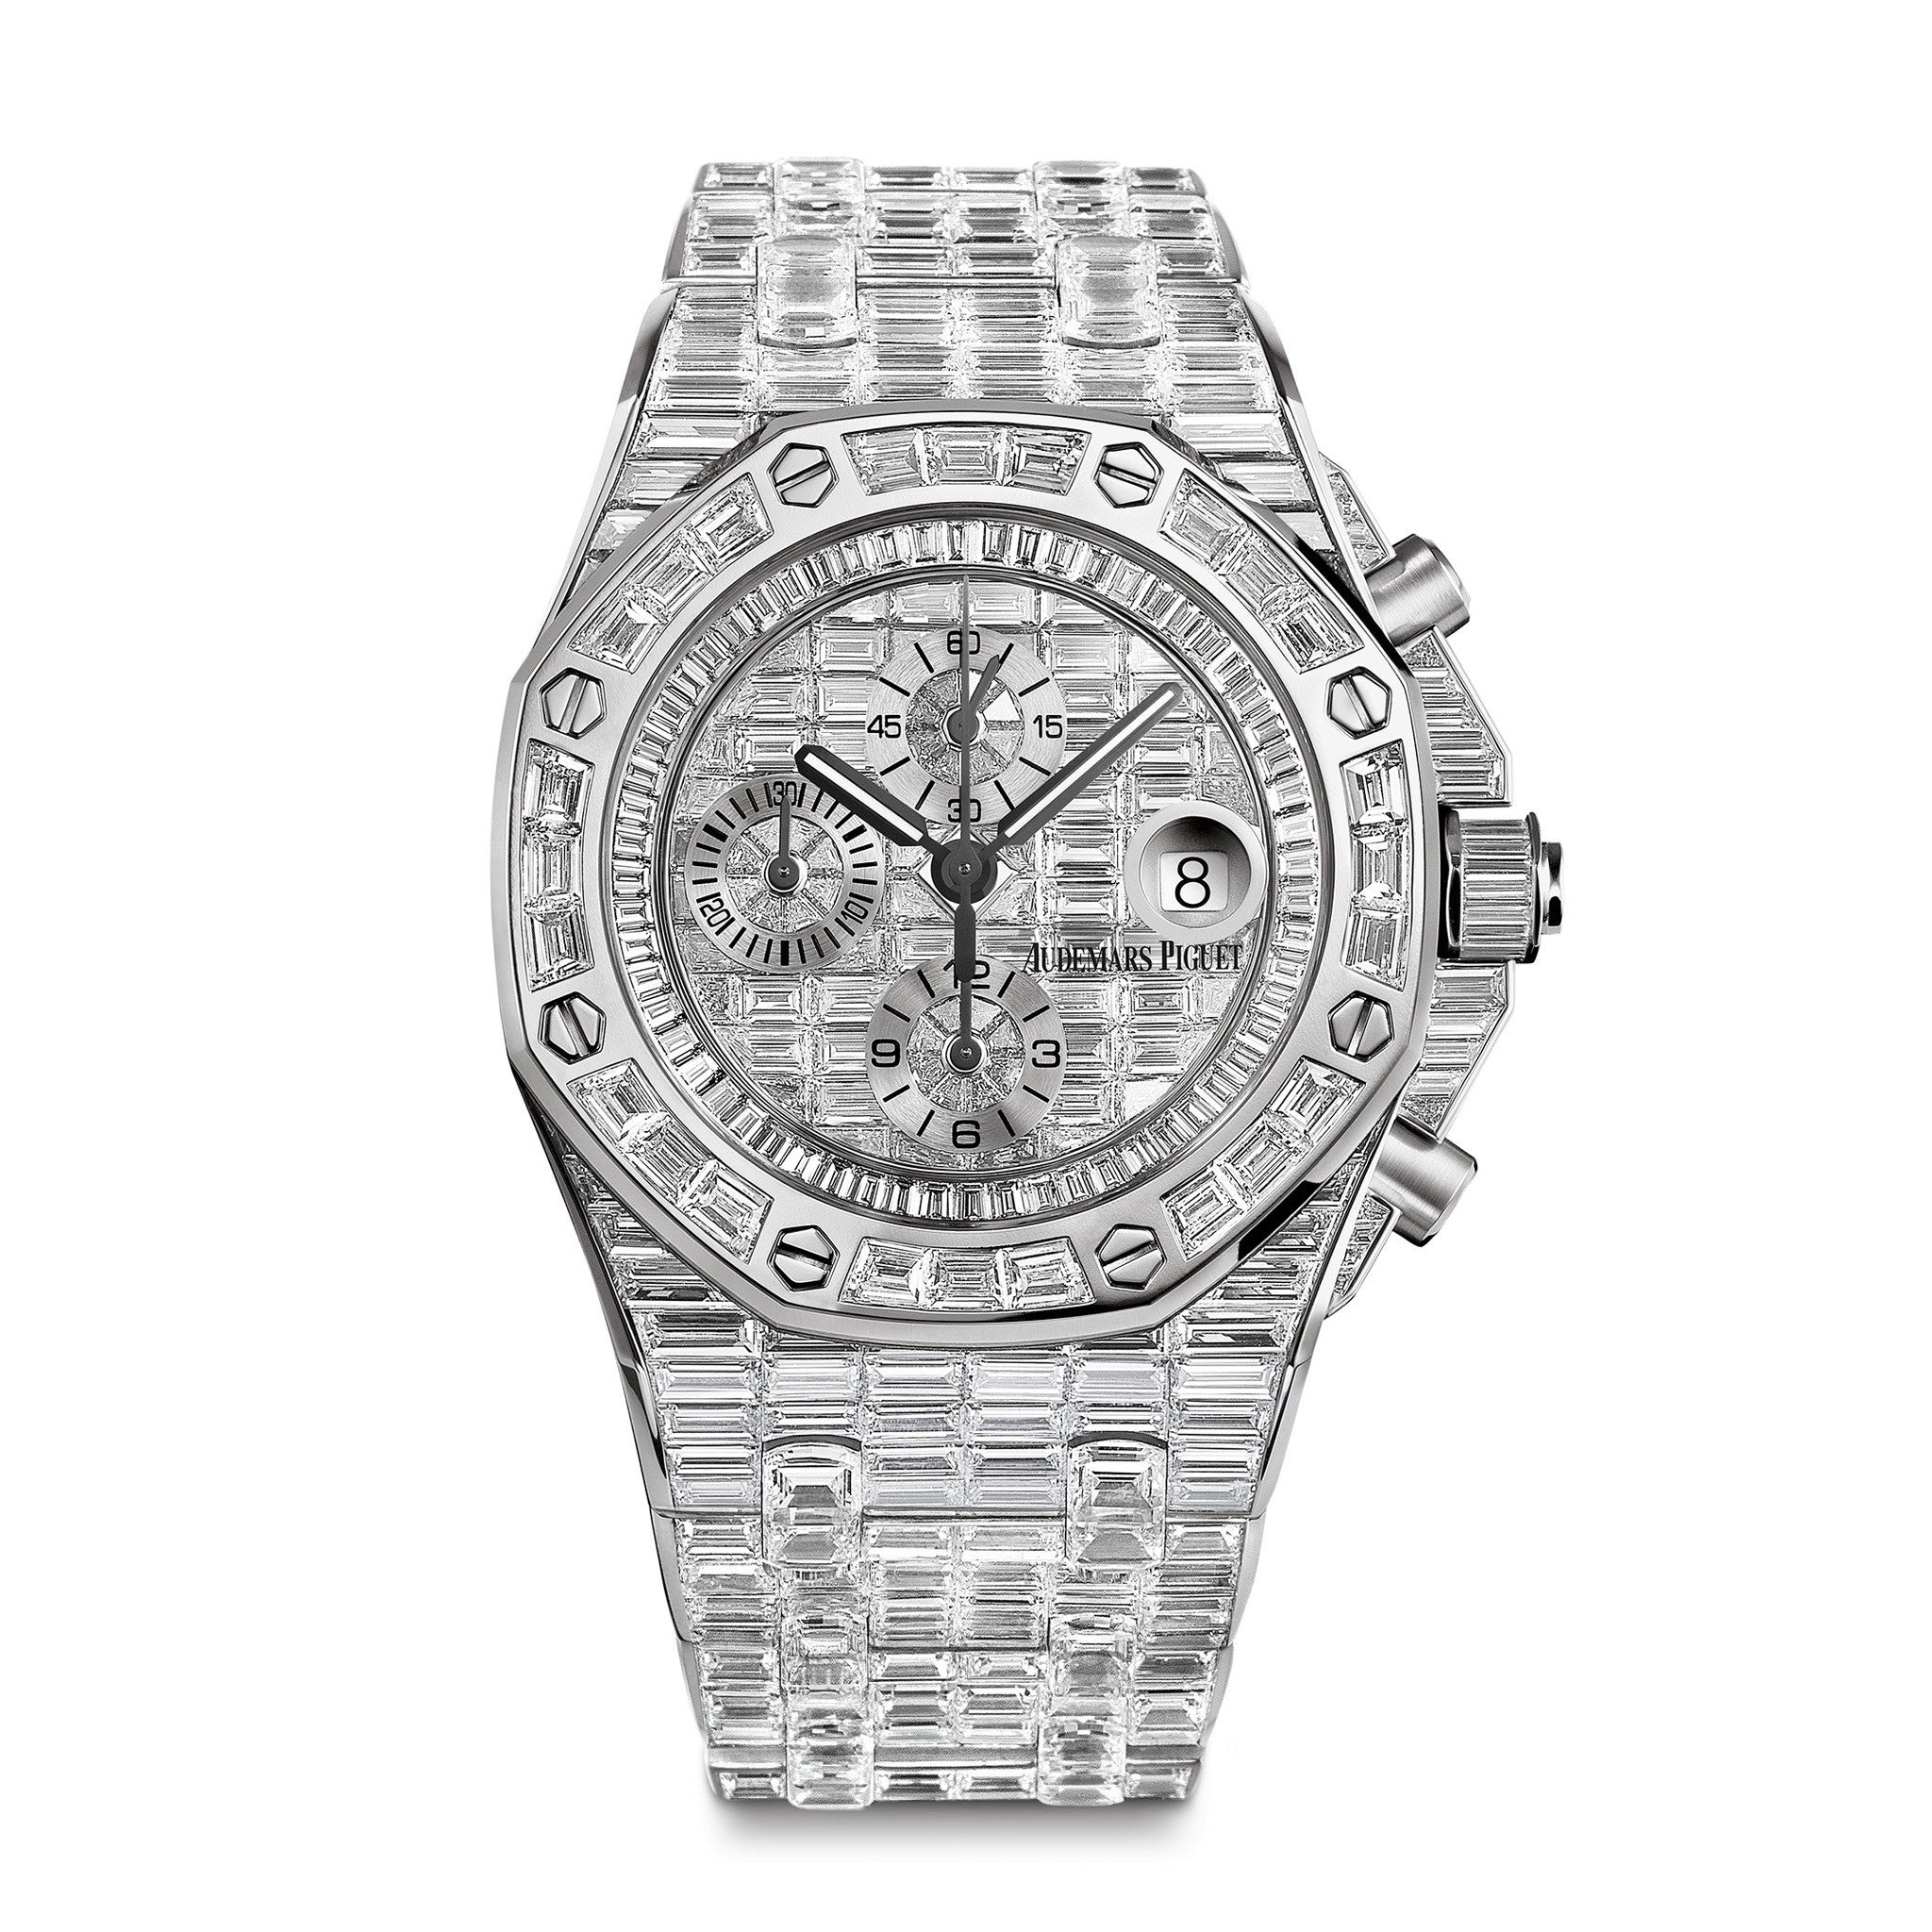 Royal Oak Offshore Chronograph 26473BC.ZZ.8043BC.01 - Audemars Piguet